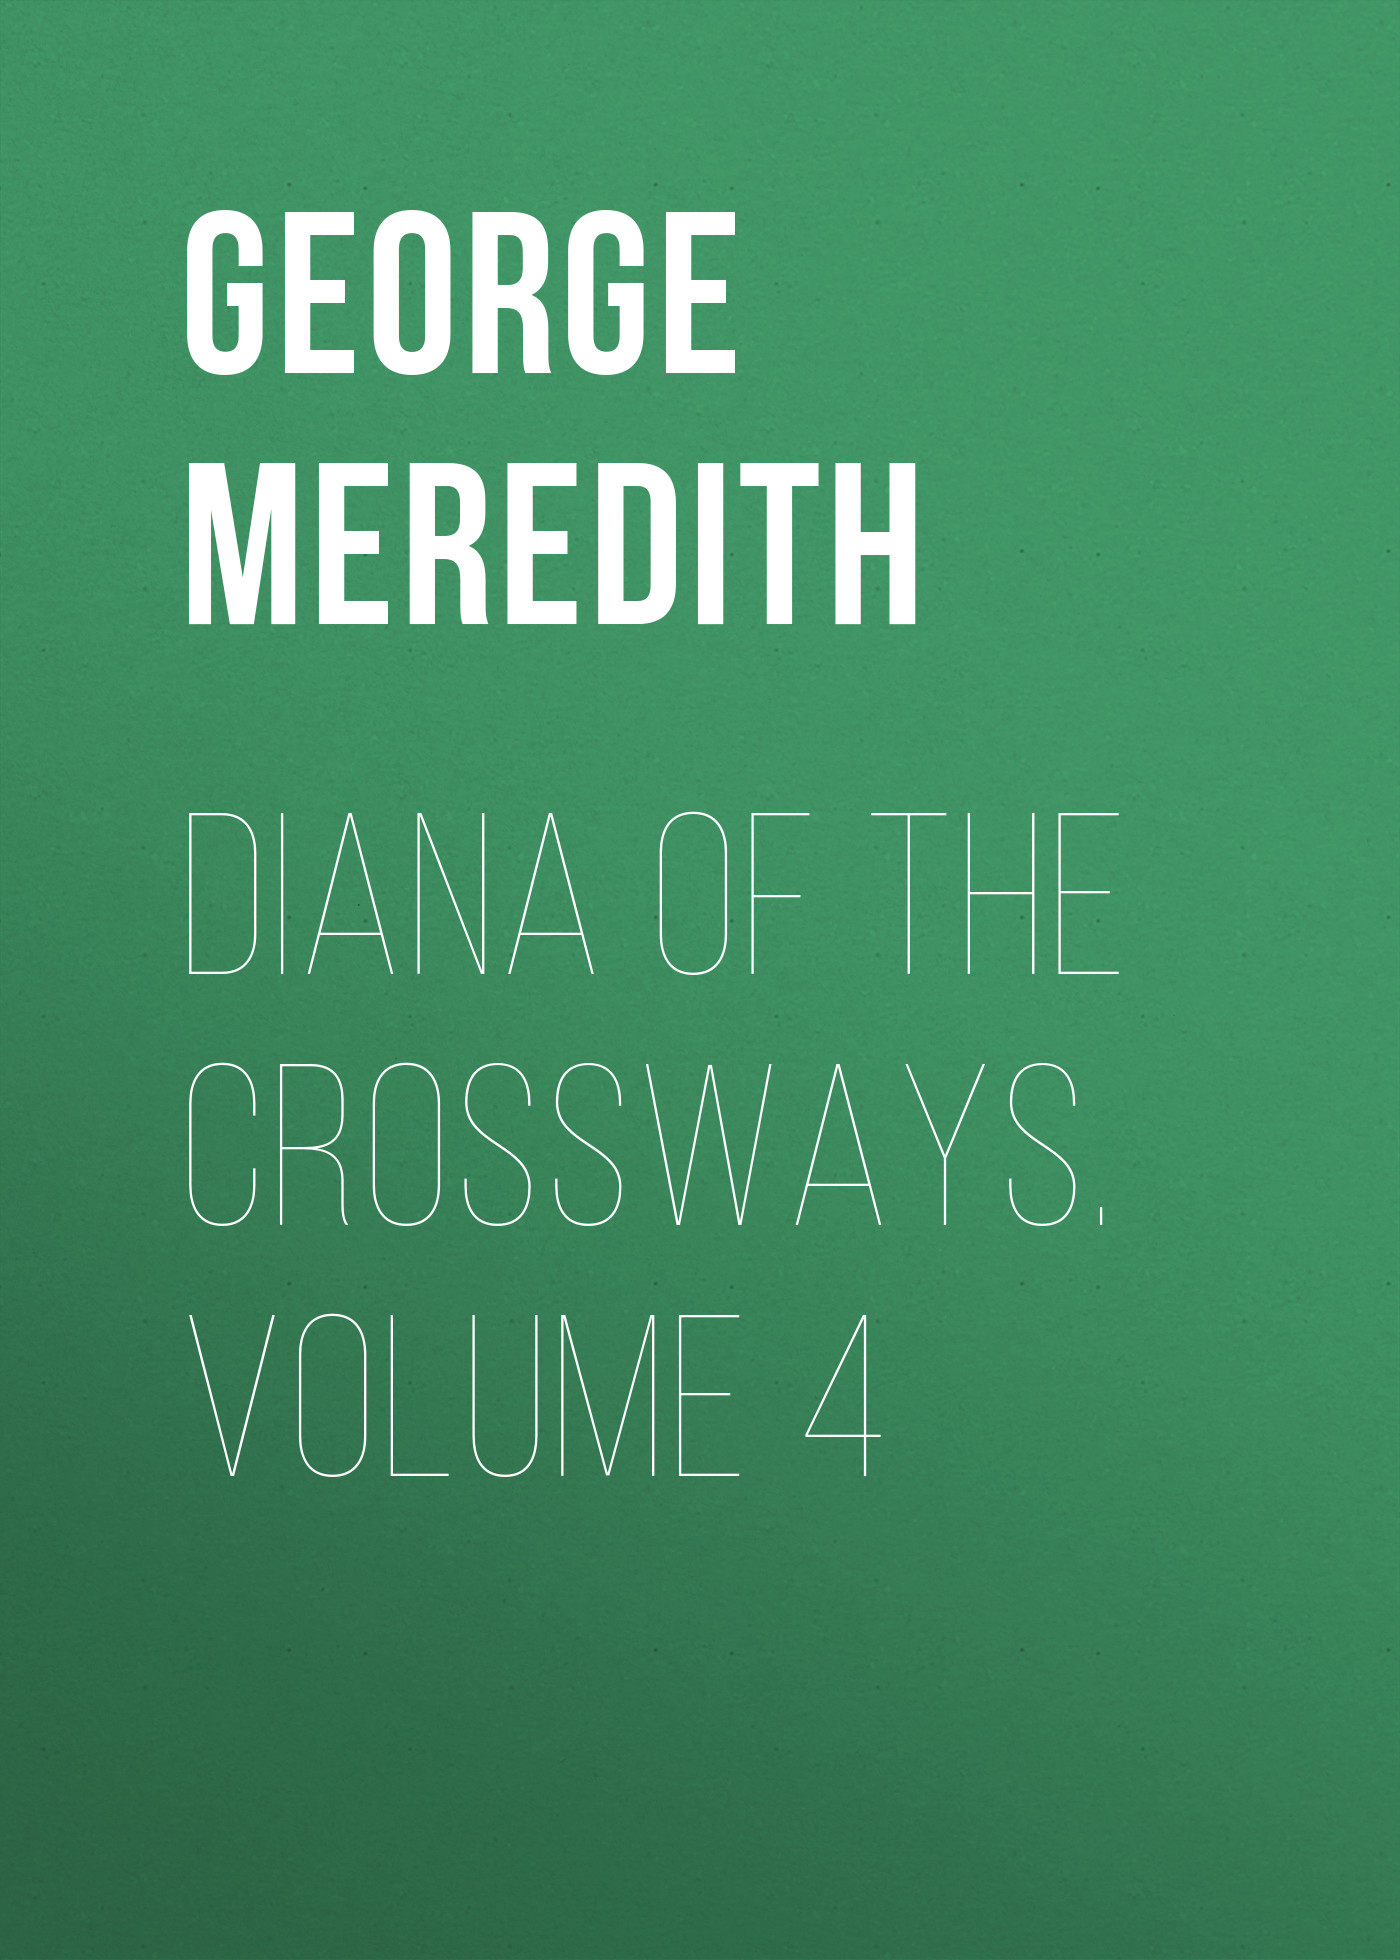 George Meredith Diana of the Crossways. Volume 4 the strangers volume 4